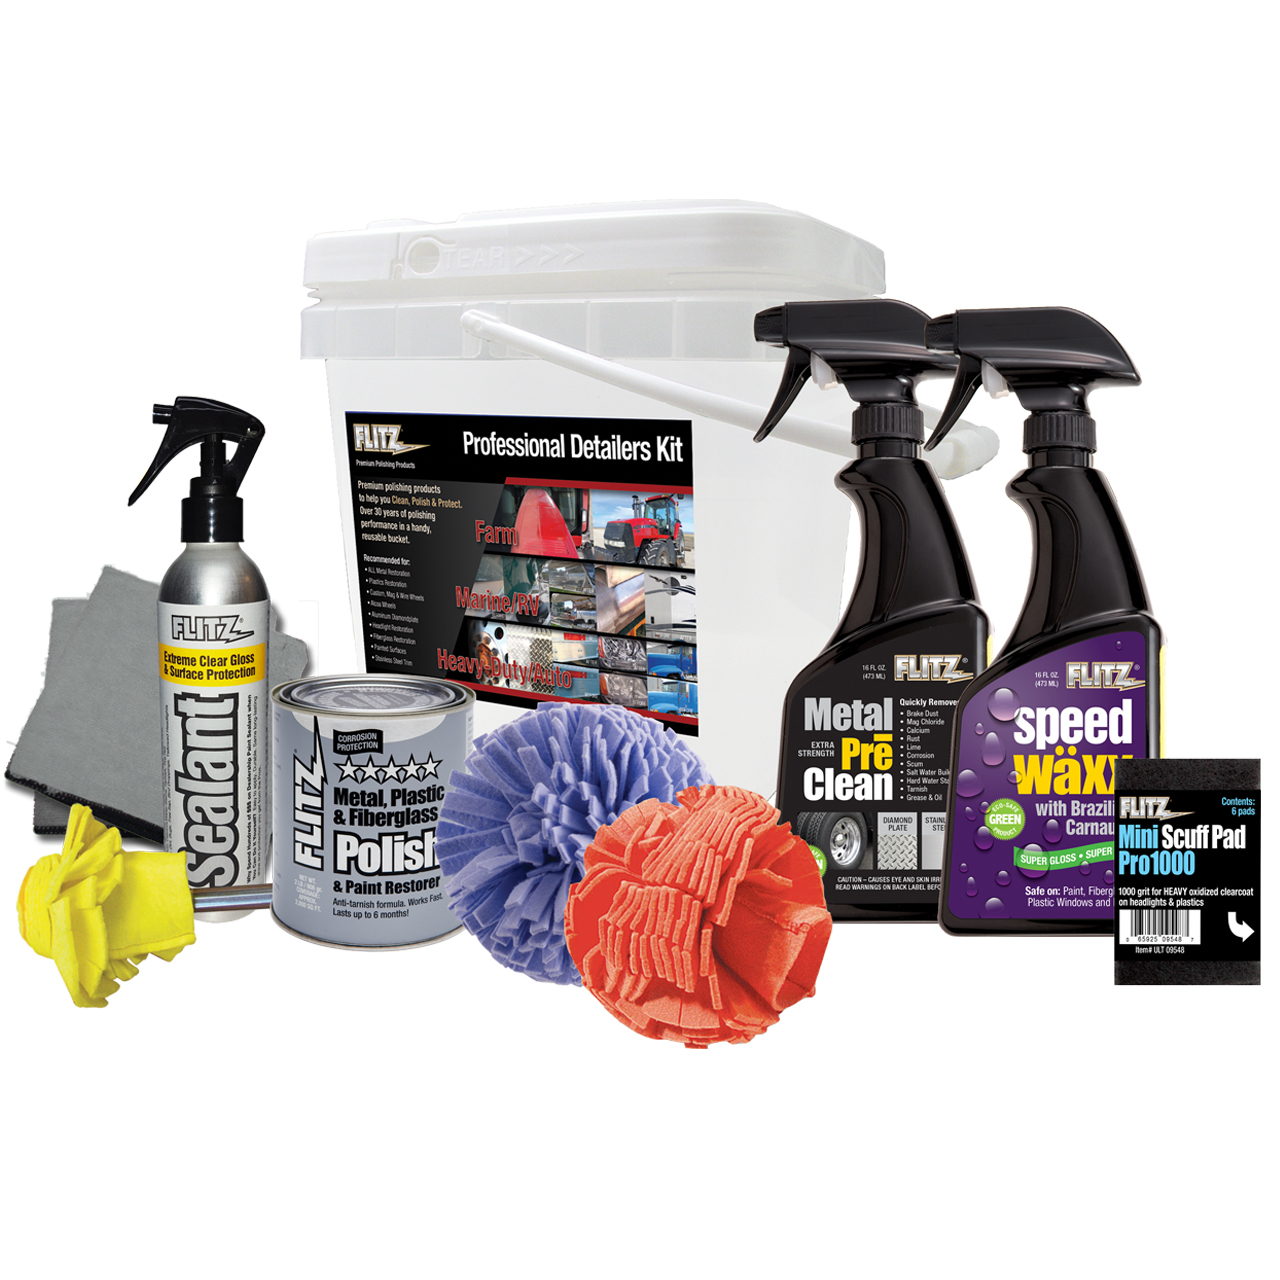 Professional Detailing Kit